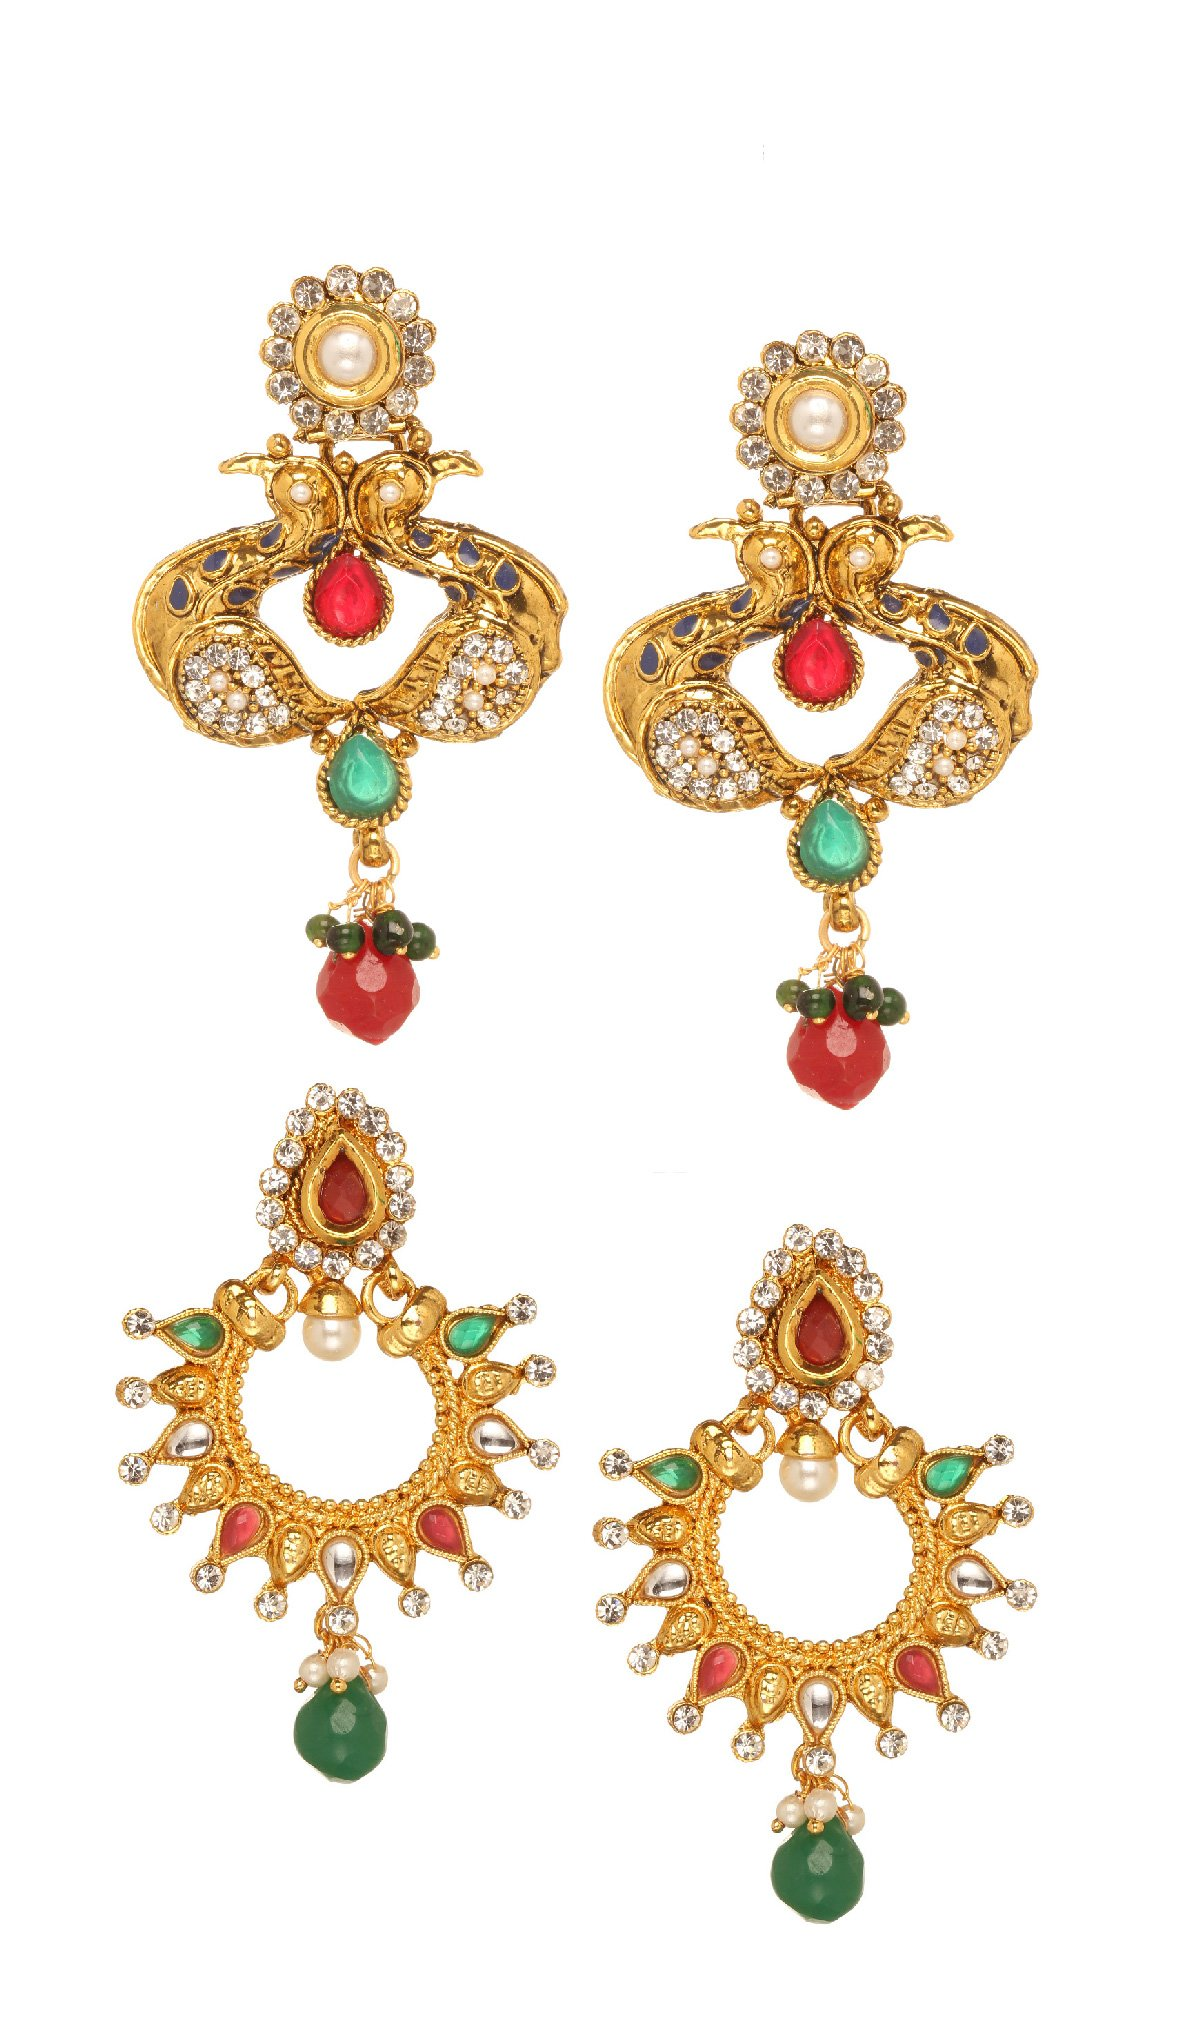 Bindhani Indian Bollywood Jewellery Wedding Bridal Red Green Earrings For Women (Pack of 2)